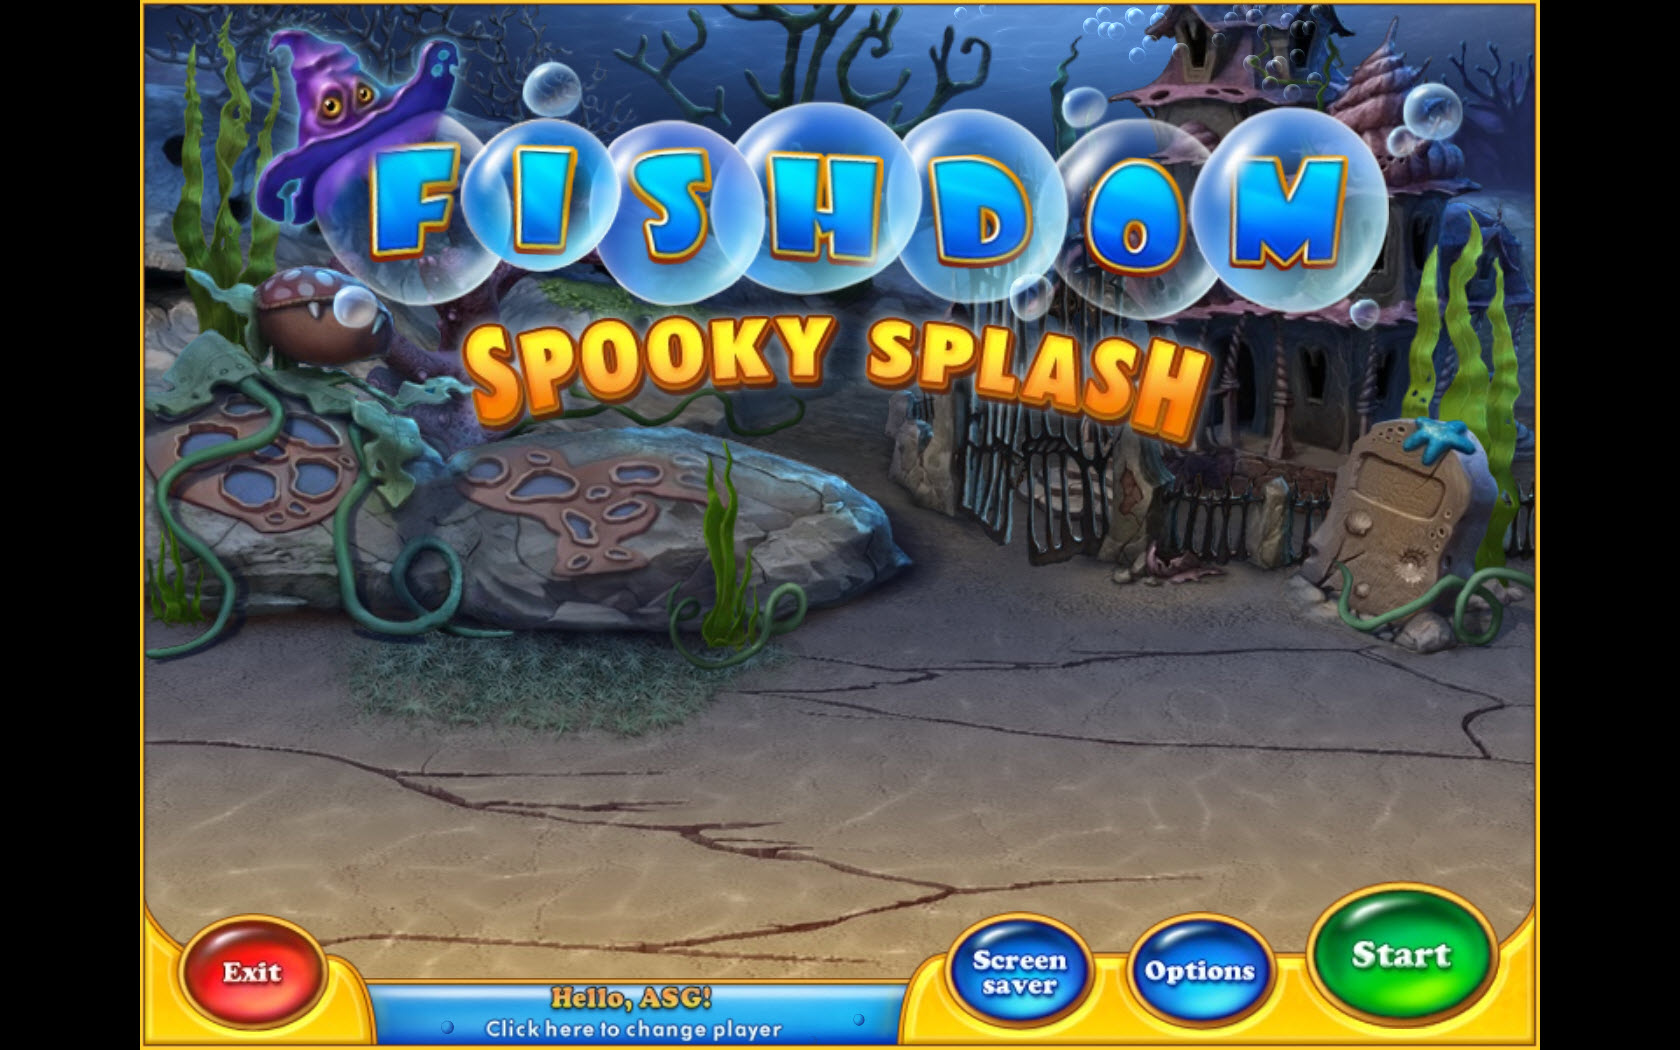 Fishdom Spooky Splash Free Download